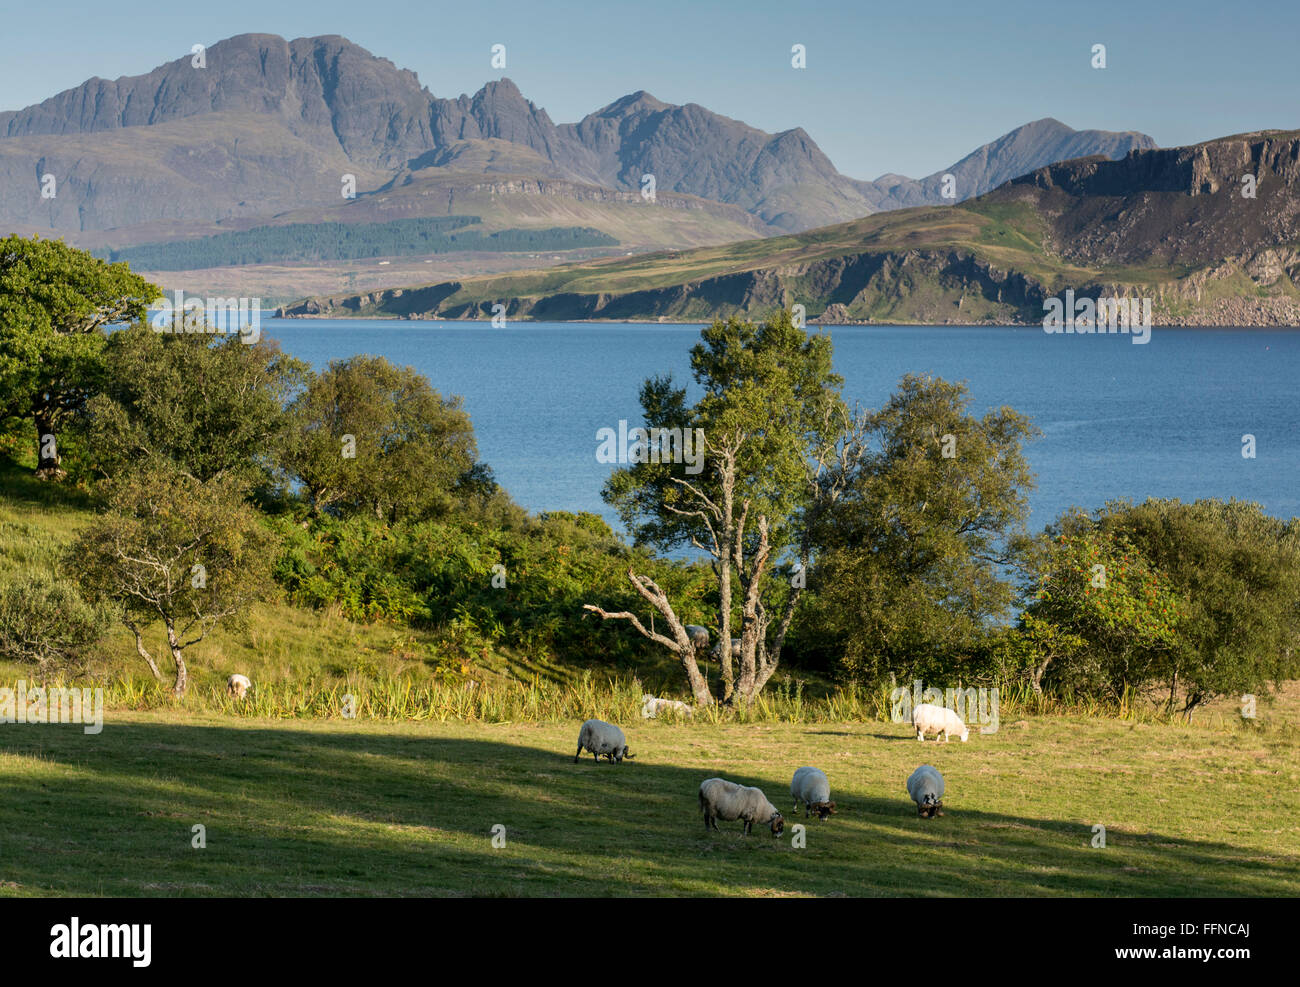 toskavaig sleat with sheep grazing and view of blaven with trees - Stock Image